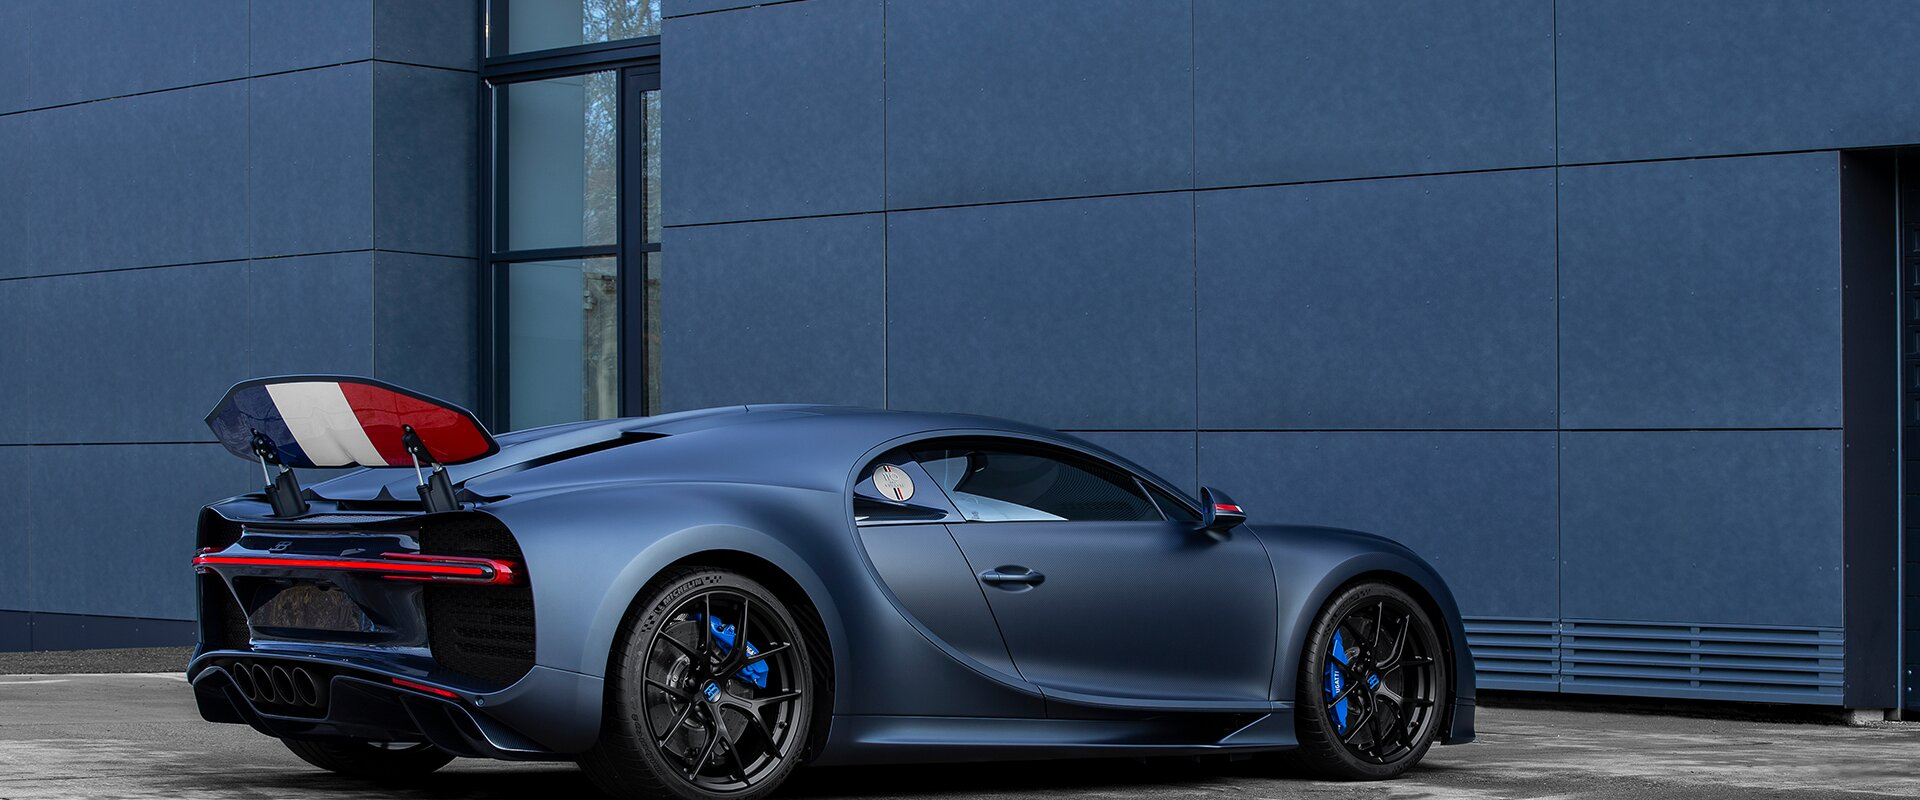 2020 Bugatti Veyron Concept and Review